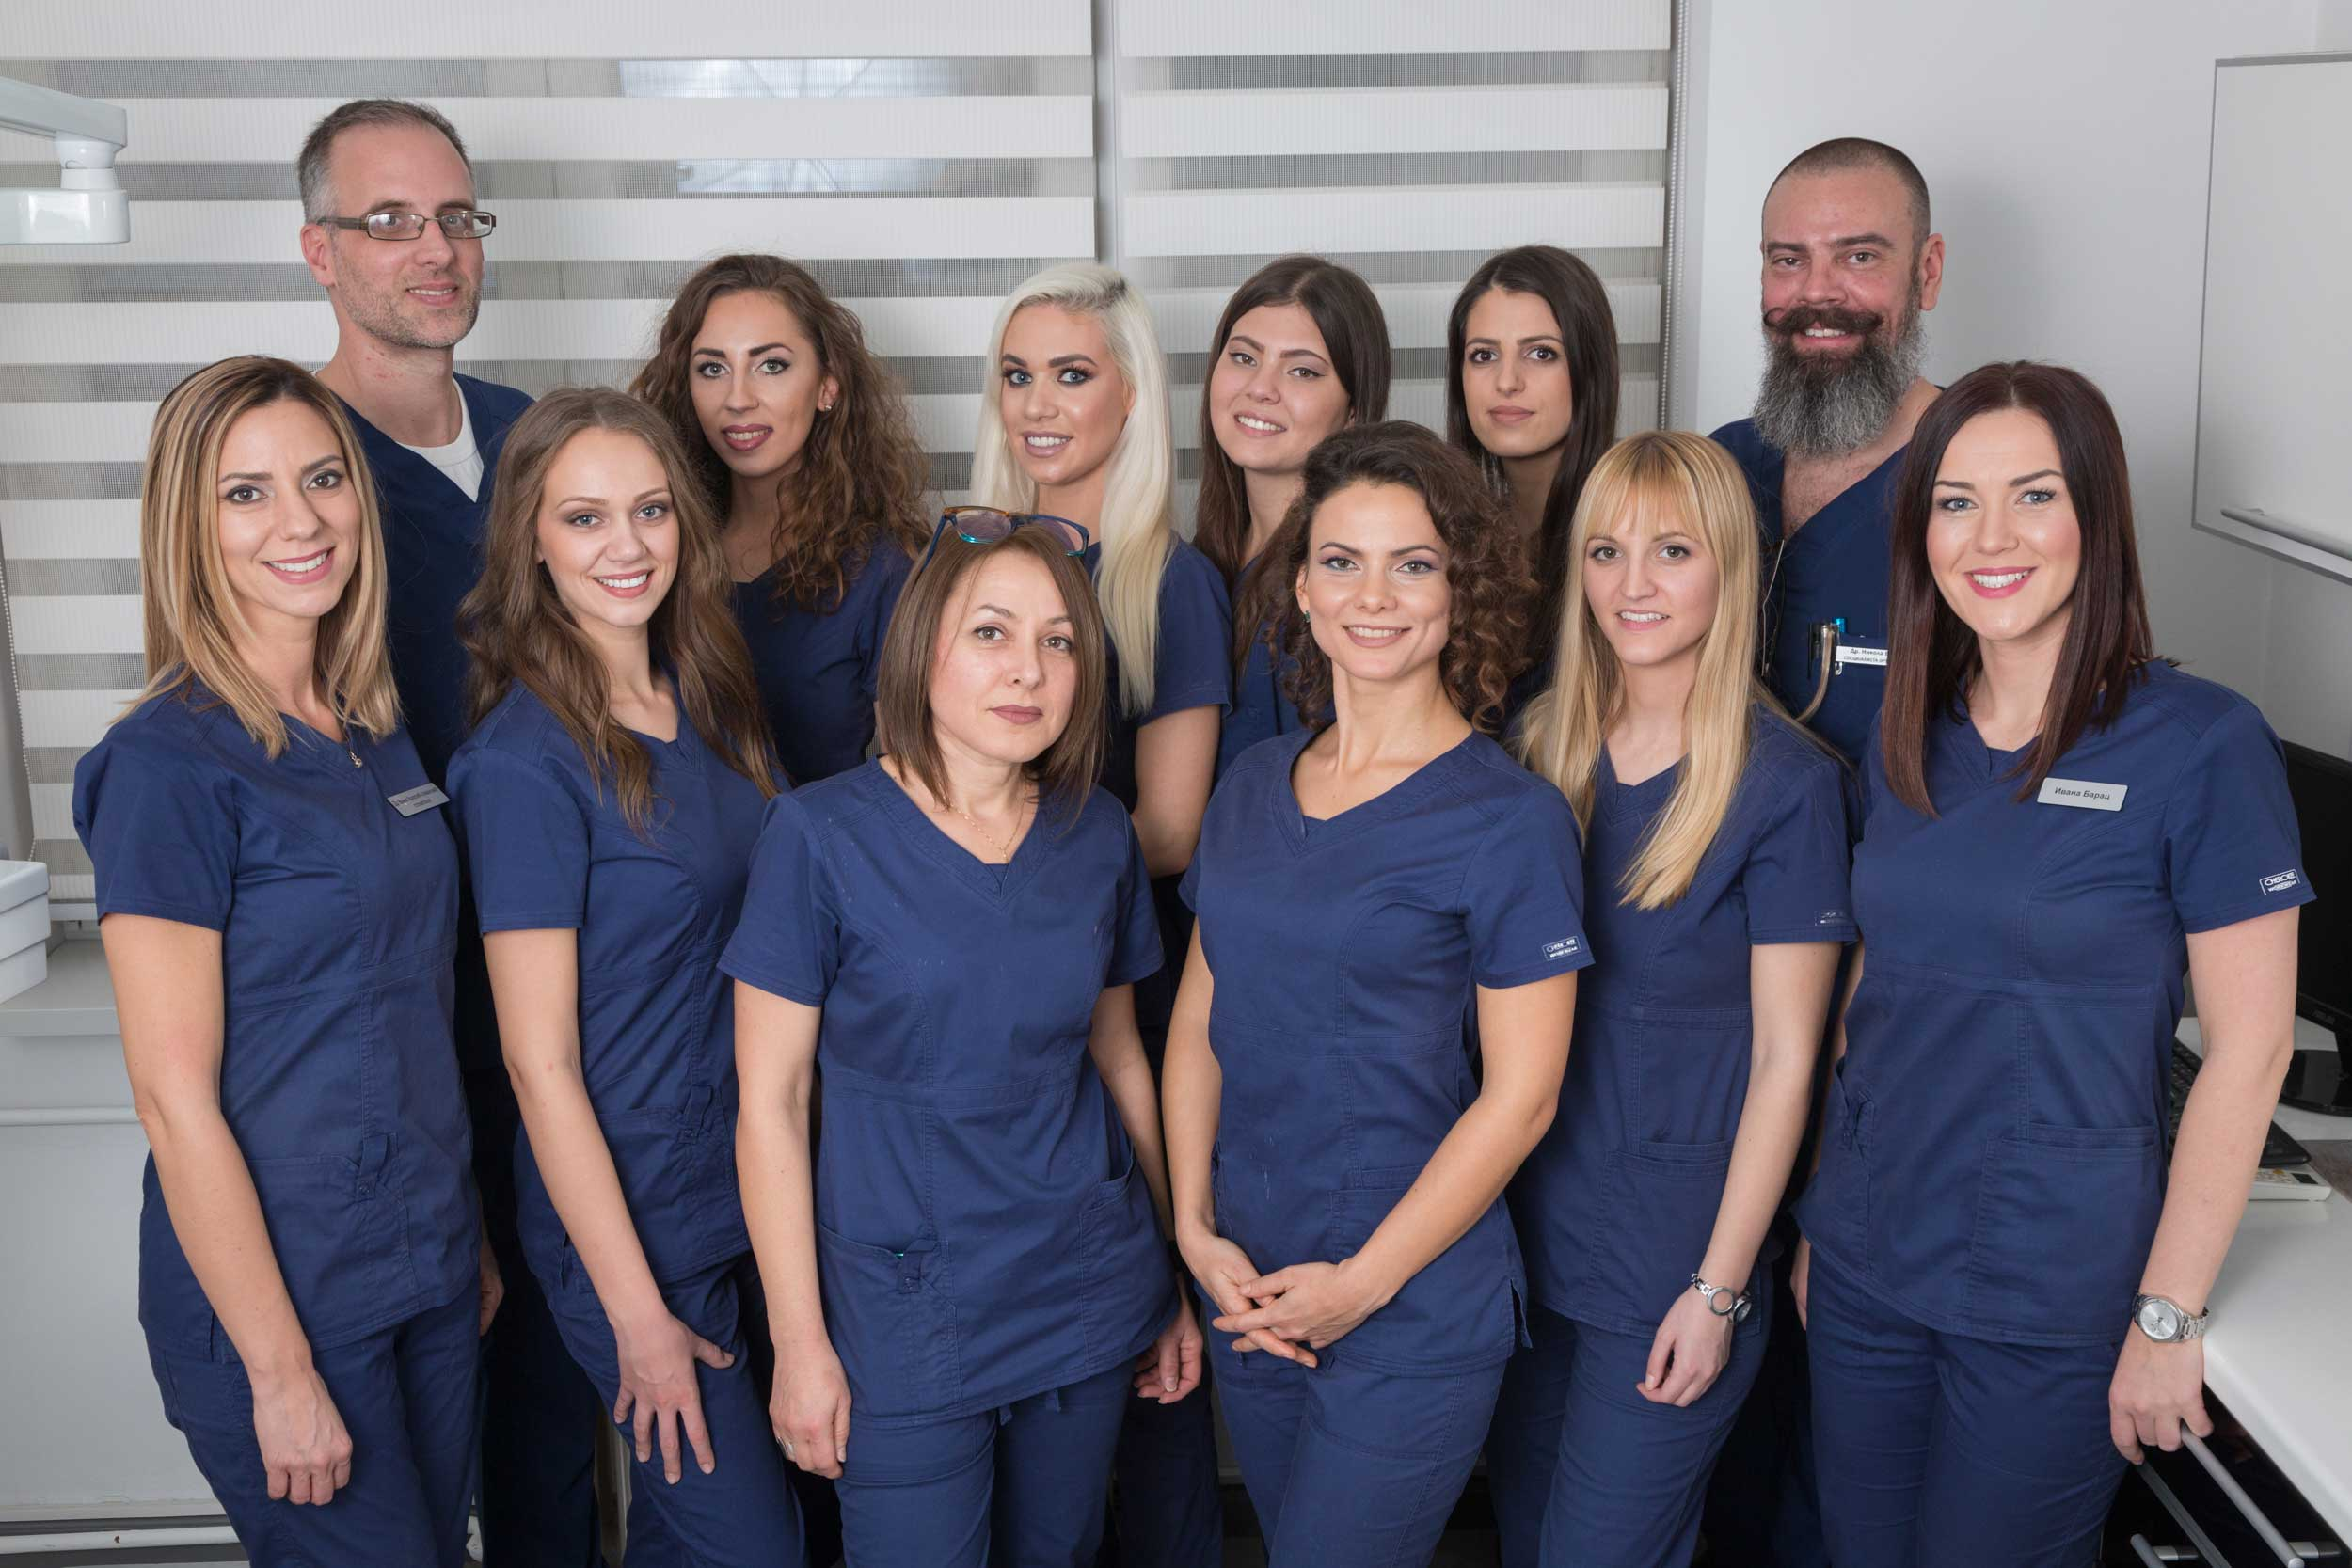 stomatoloska-ordinacija-vunjak-dental-clinic-vunjak-tim-11